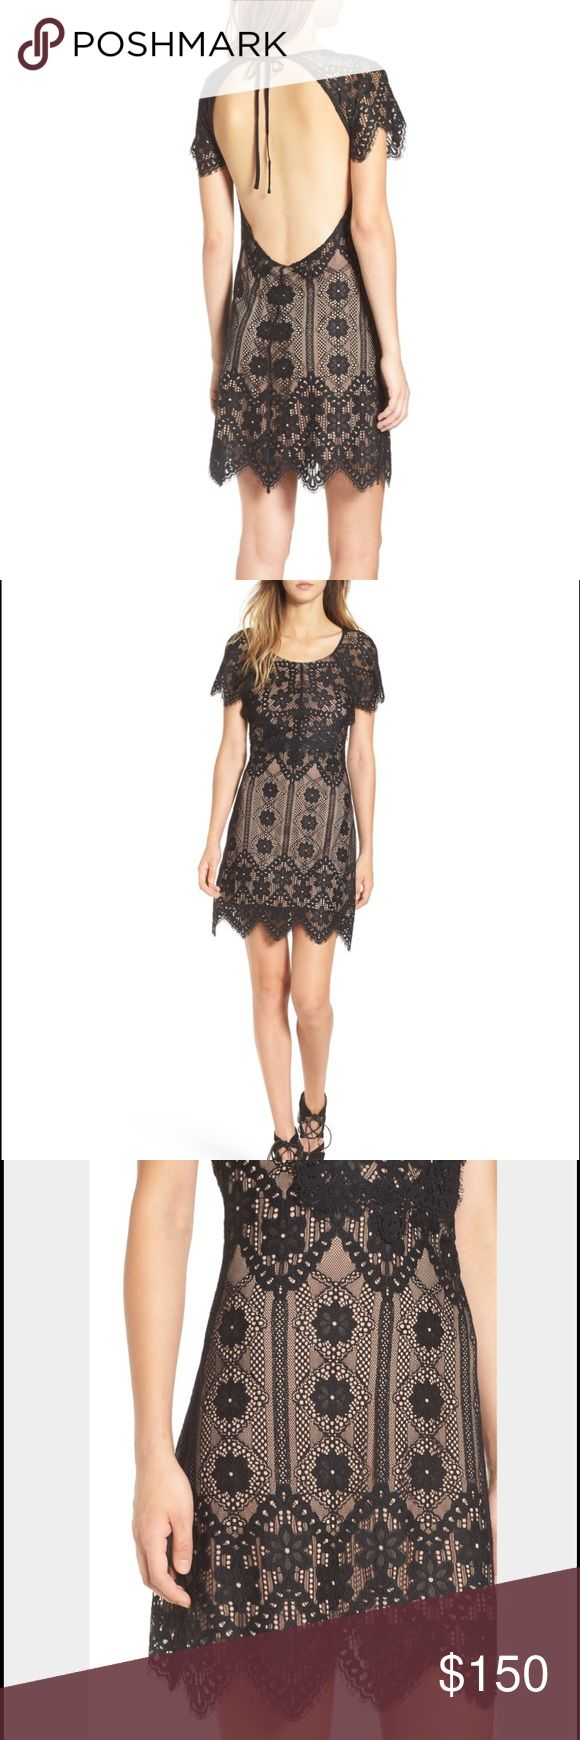 For Love and Lemons RARE Lyla Dress Nordstrom Super rare FOR LOVE AND LEMONS Lyla Lace Mini Dress for Nordstrom Size SMALL. Never worn.  Brand new with tags still attached!  Details: Pretty eyelash lace gets a flirtatious update on a daringly slim-fitting dress with sheer cap sleeves and a skin-flaunting cutout in back.  Back tie closure. Scooped neck. Short sleeves. Lined. 85% nylon, 15% polyester. Dry clean. By For Love & Lemons; imported. For Love and Lemons Dresses Mini